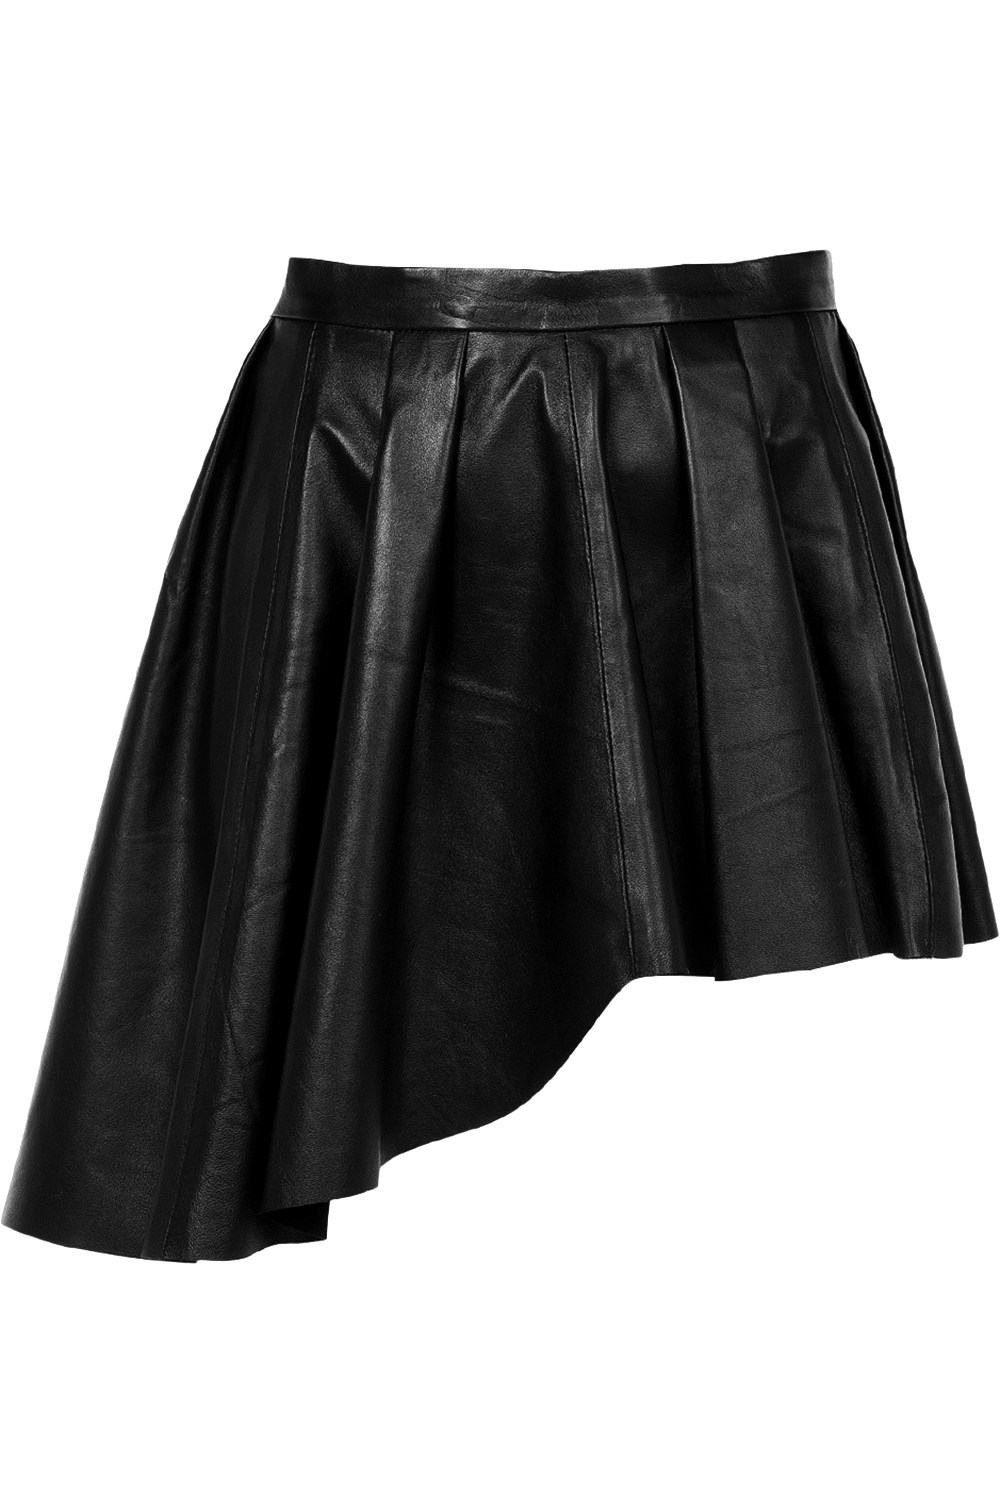 selma 199 ilek asymmetric leather skirt black 365ist